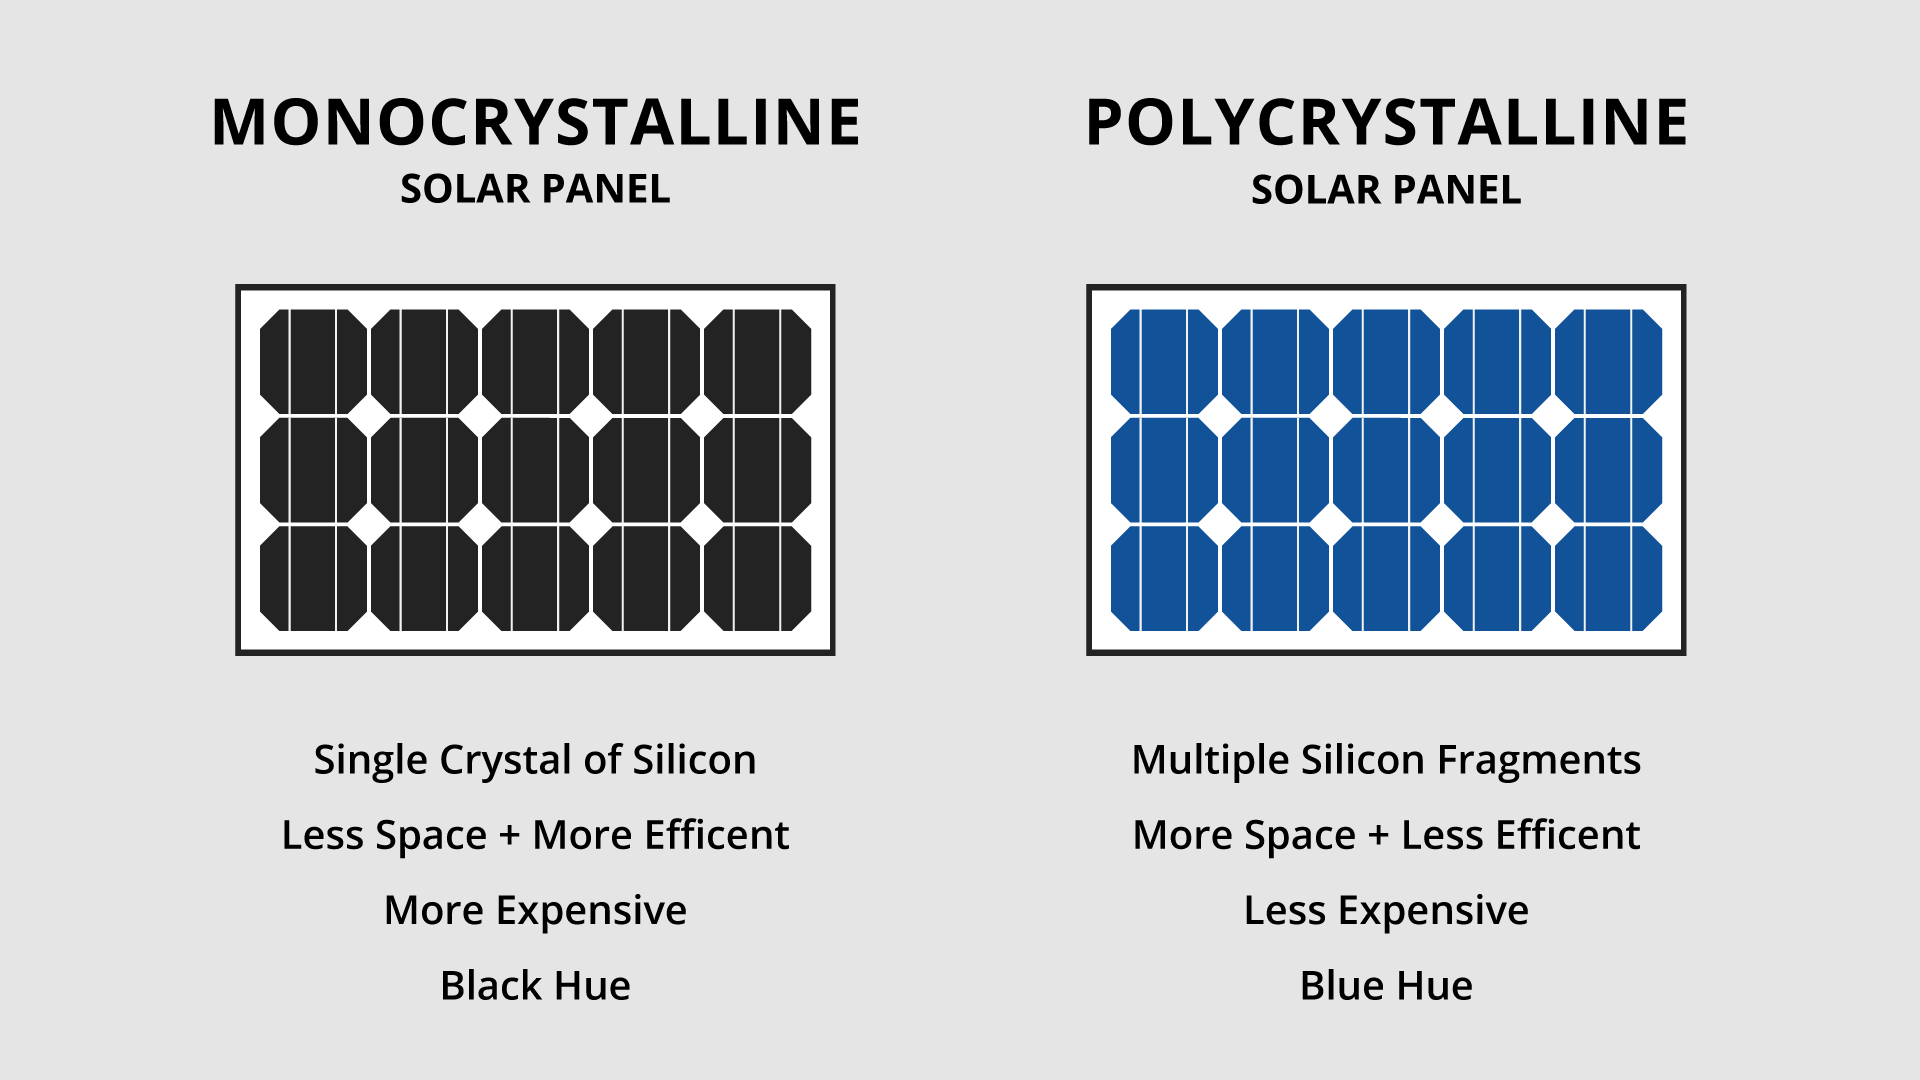 Monocrystalline solar panel and a polycrystalline panel